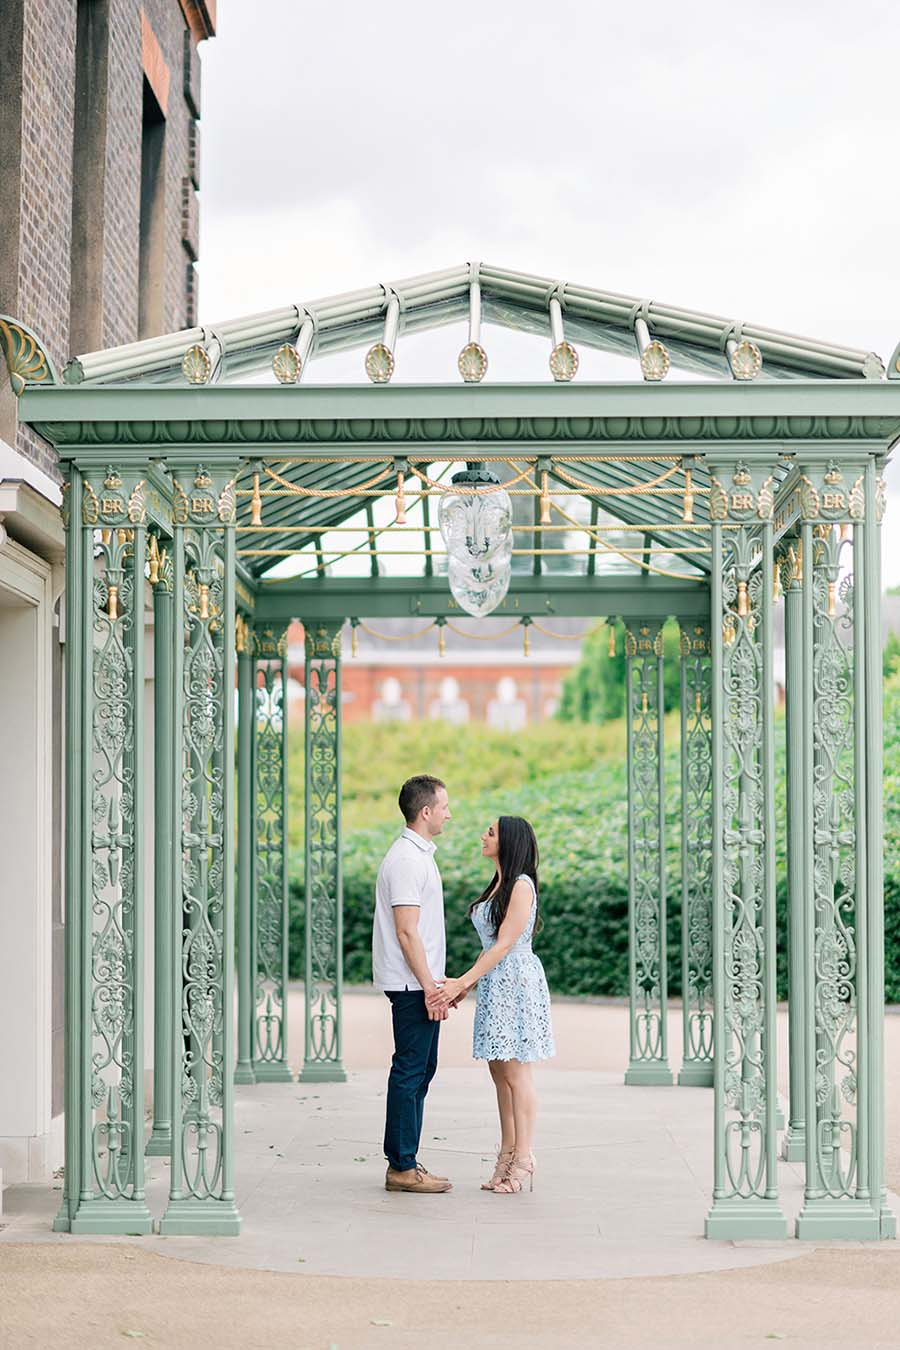 A Beautiful Kensington Palace & Gardens Engagement Session: Lucy & Mike